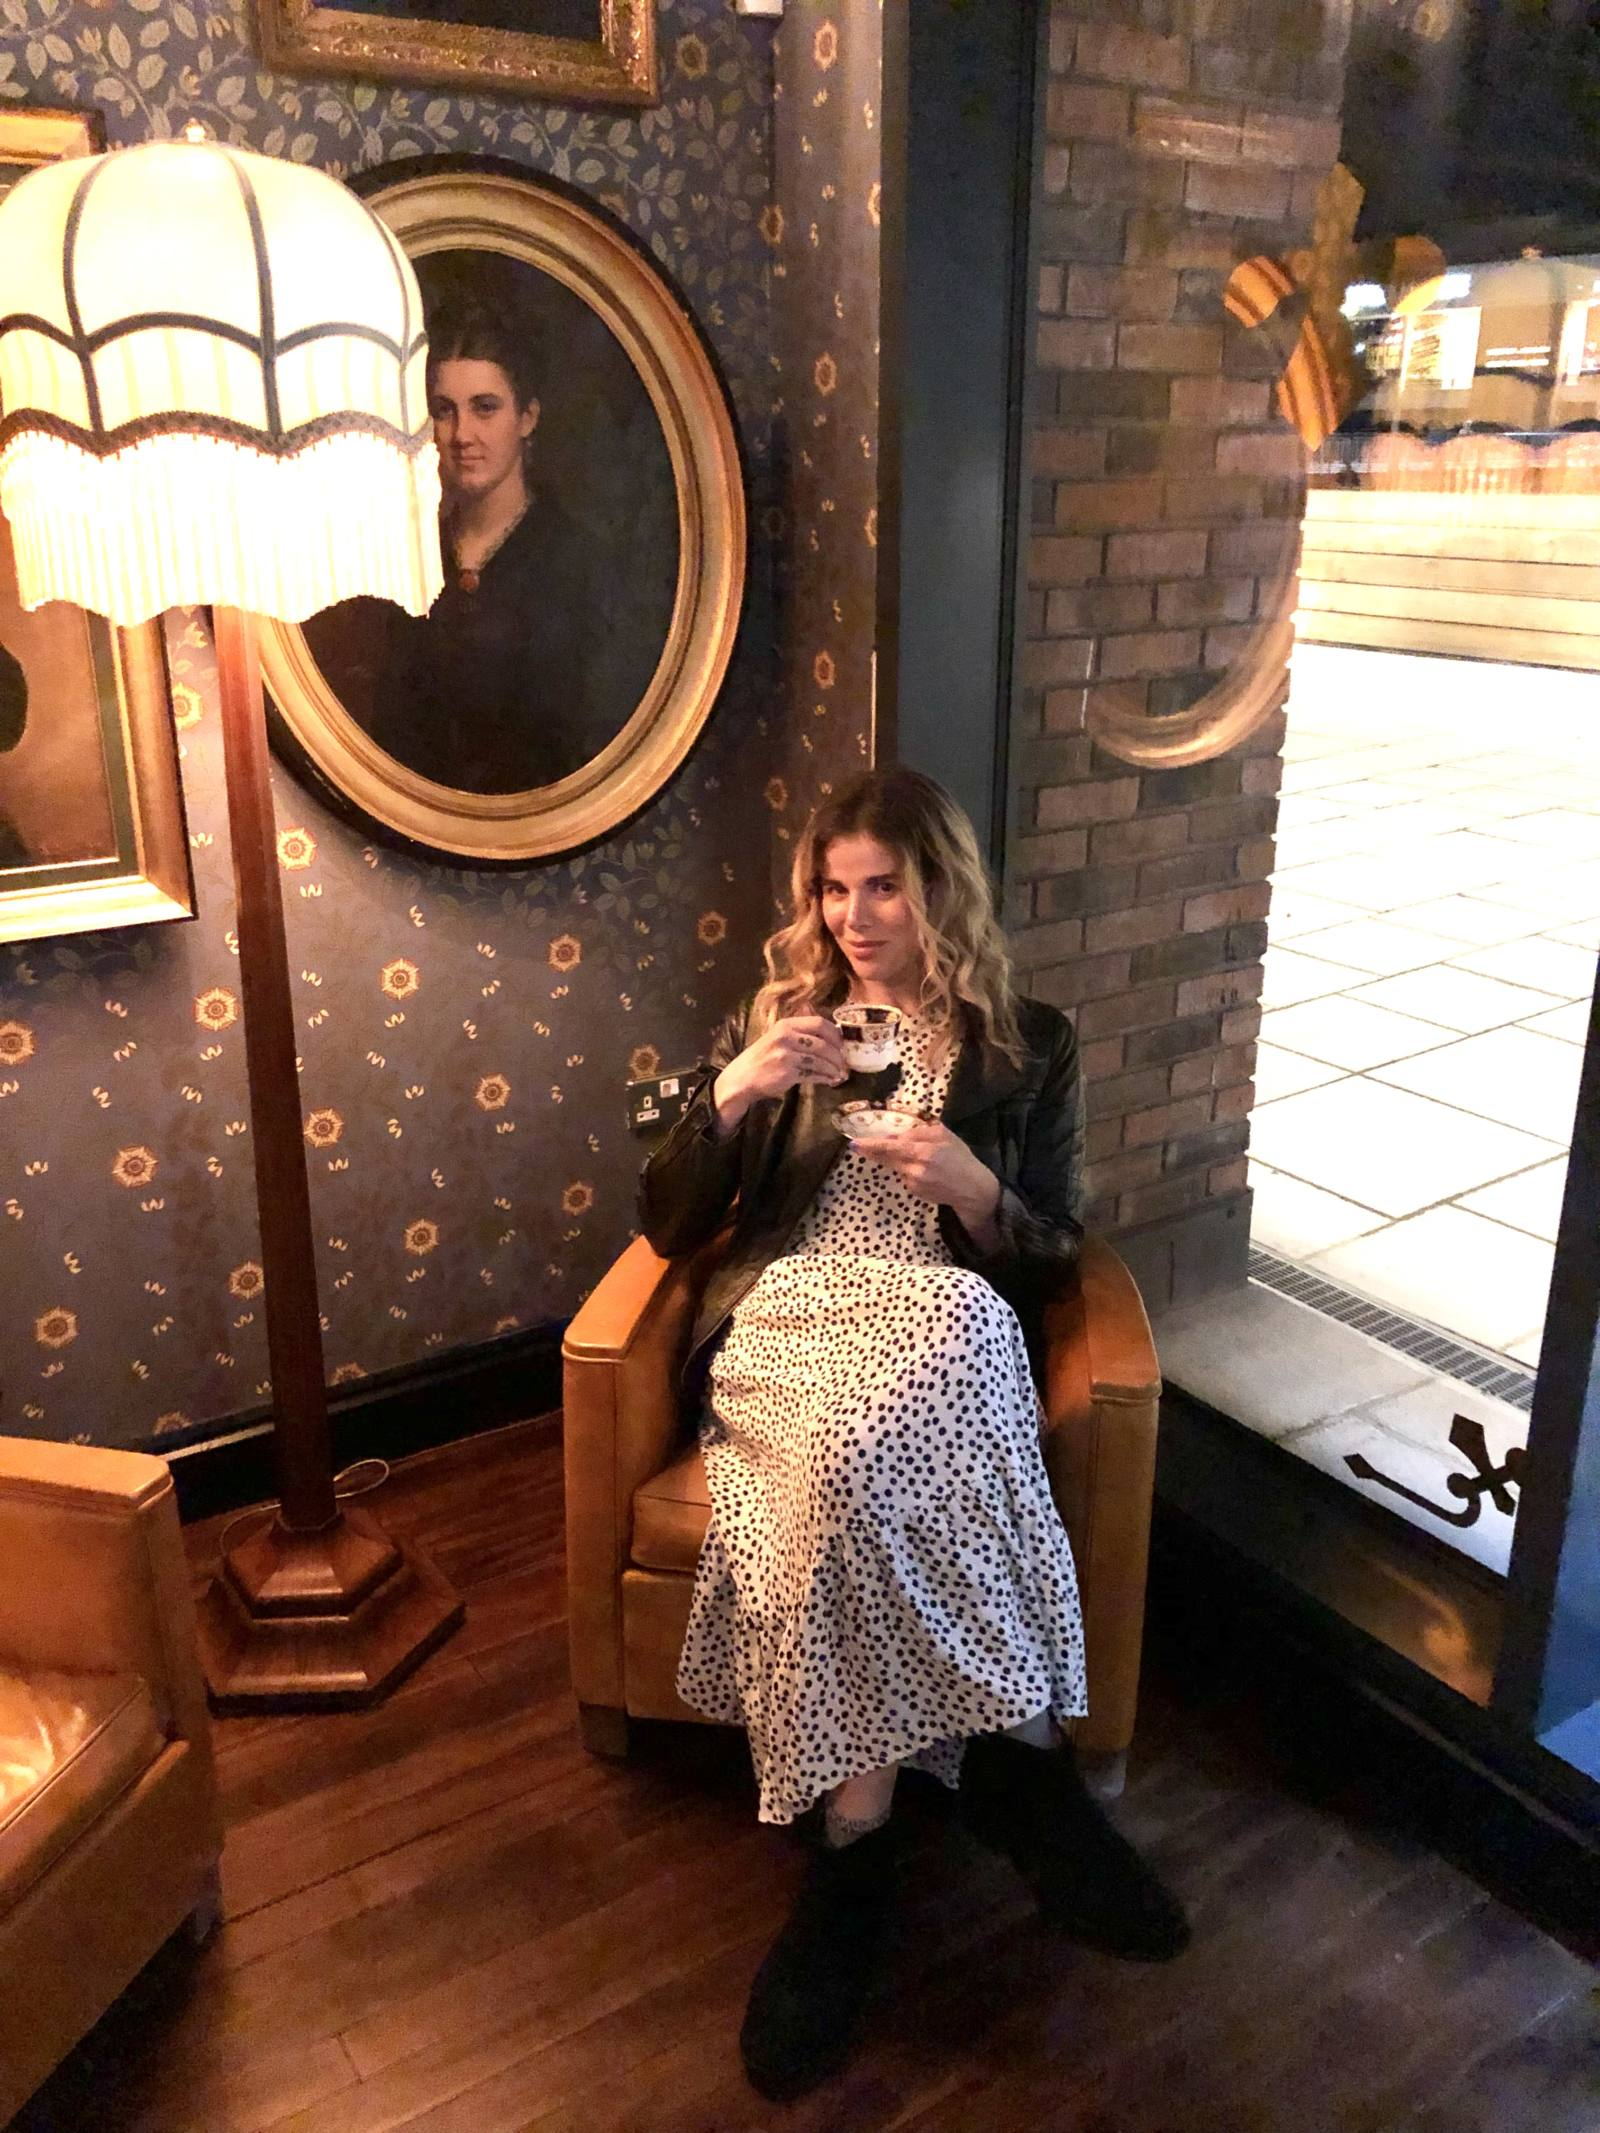 Blogger Pixie Tenenbaum wearing the Zara Hot 4 The Spot dress on Conde Nast's Wear The Dress Dar (August 22nd 2019) at The Cosy Club in Durham City Centre, sitting in a lounge chair drinking from a cup and saucer